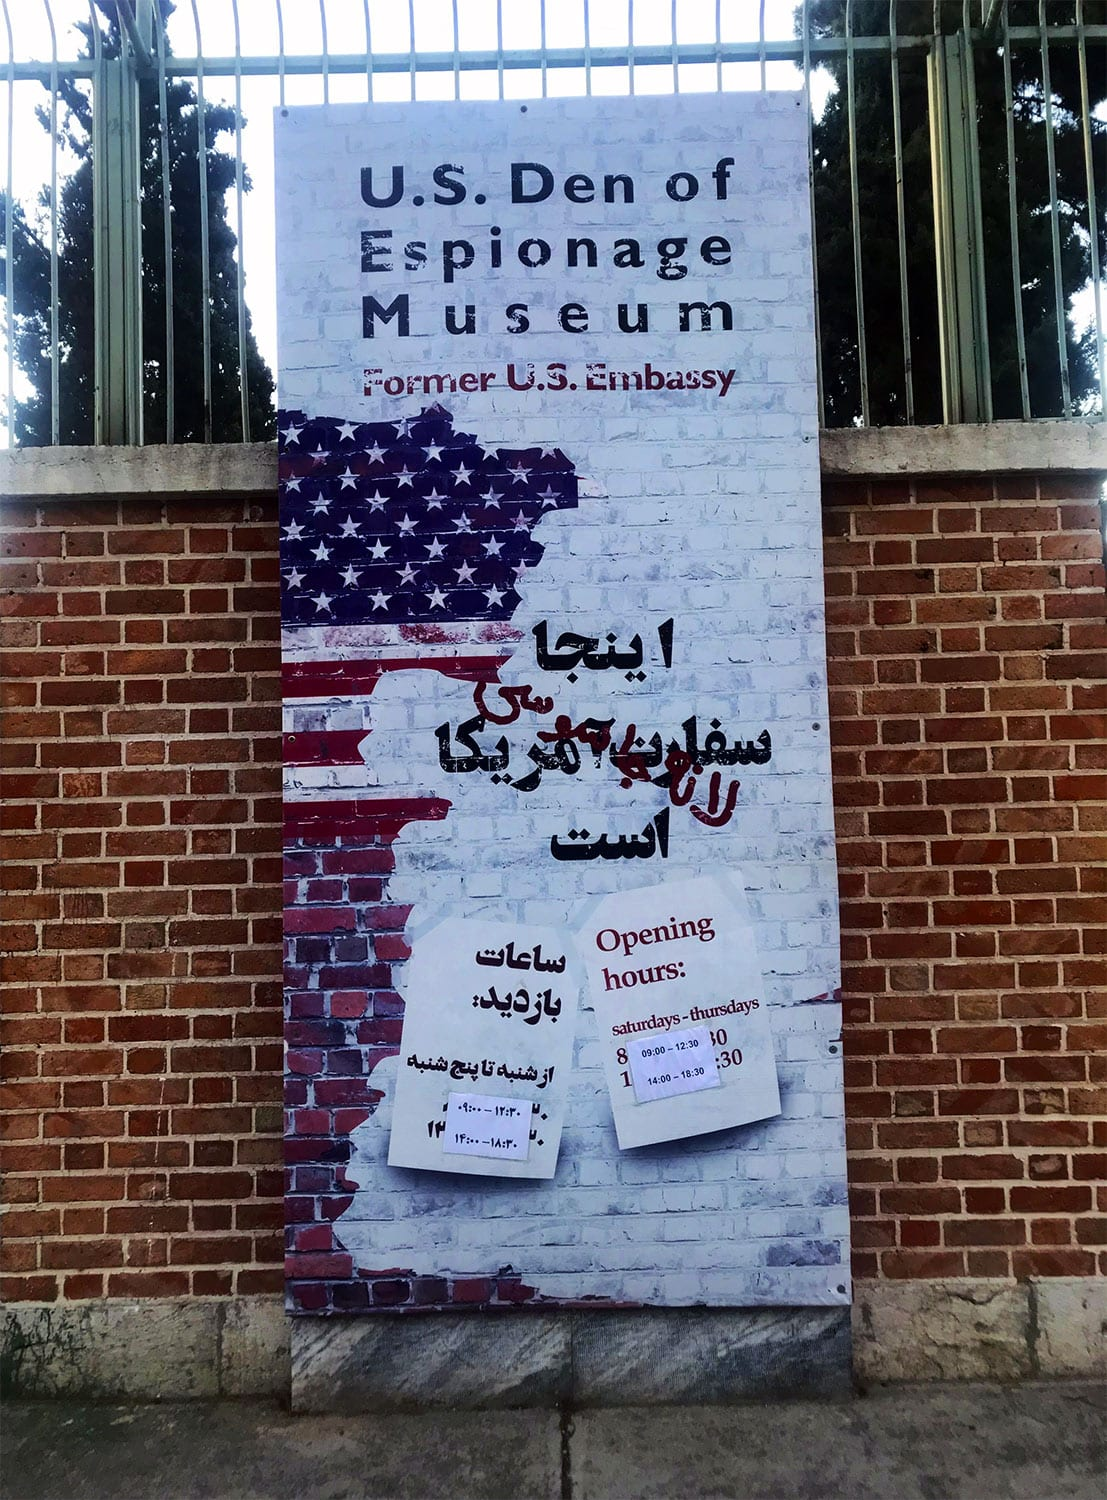 The entrance of the former US embassy in Tehran (Taleghani street)